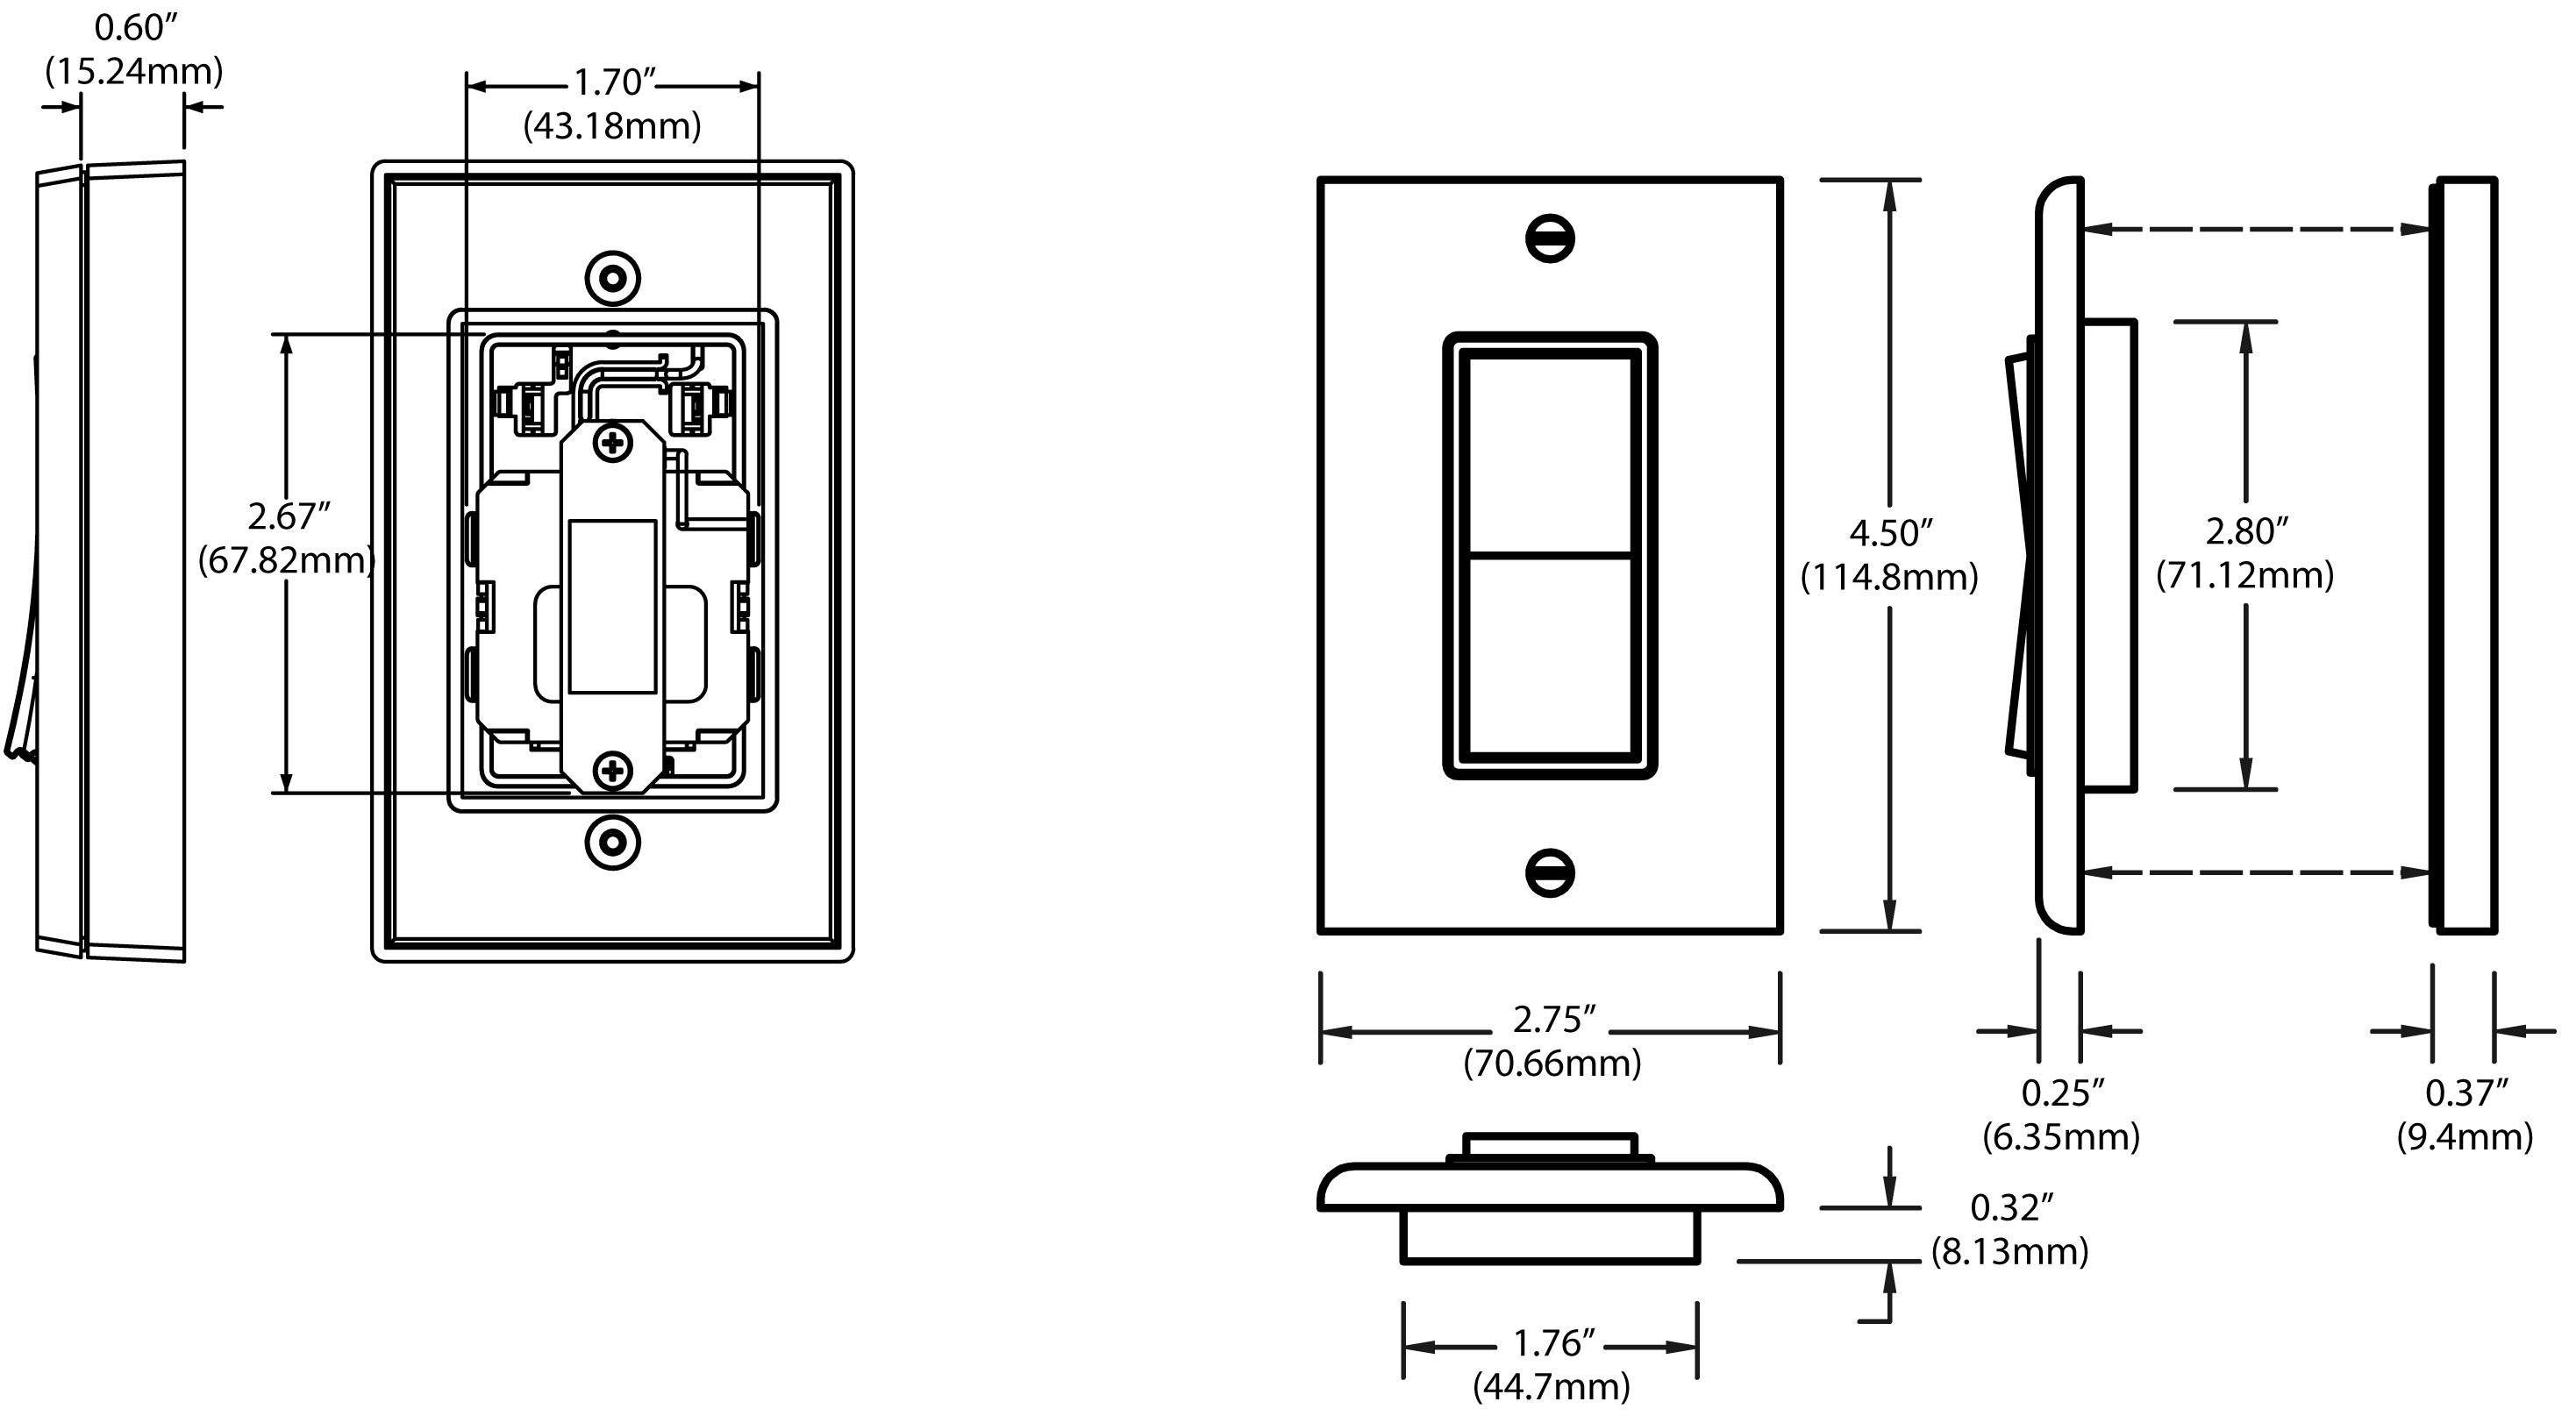 Wiring Diagram Remote Control Light Switch 42 Jammer Circuit V390024919 Leviton Wss0s P0w Wireless Self Powered White